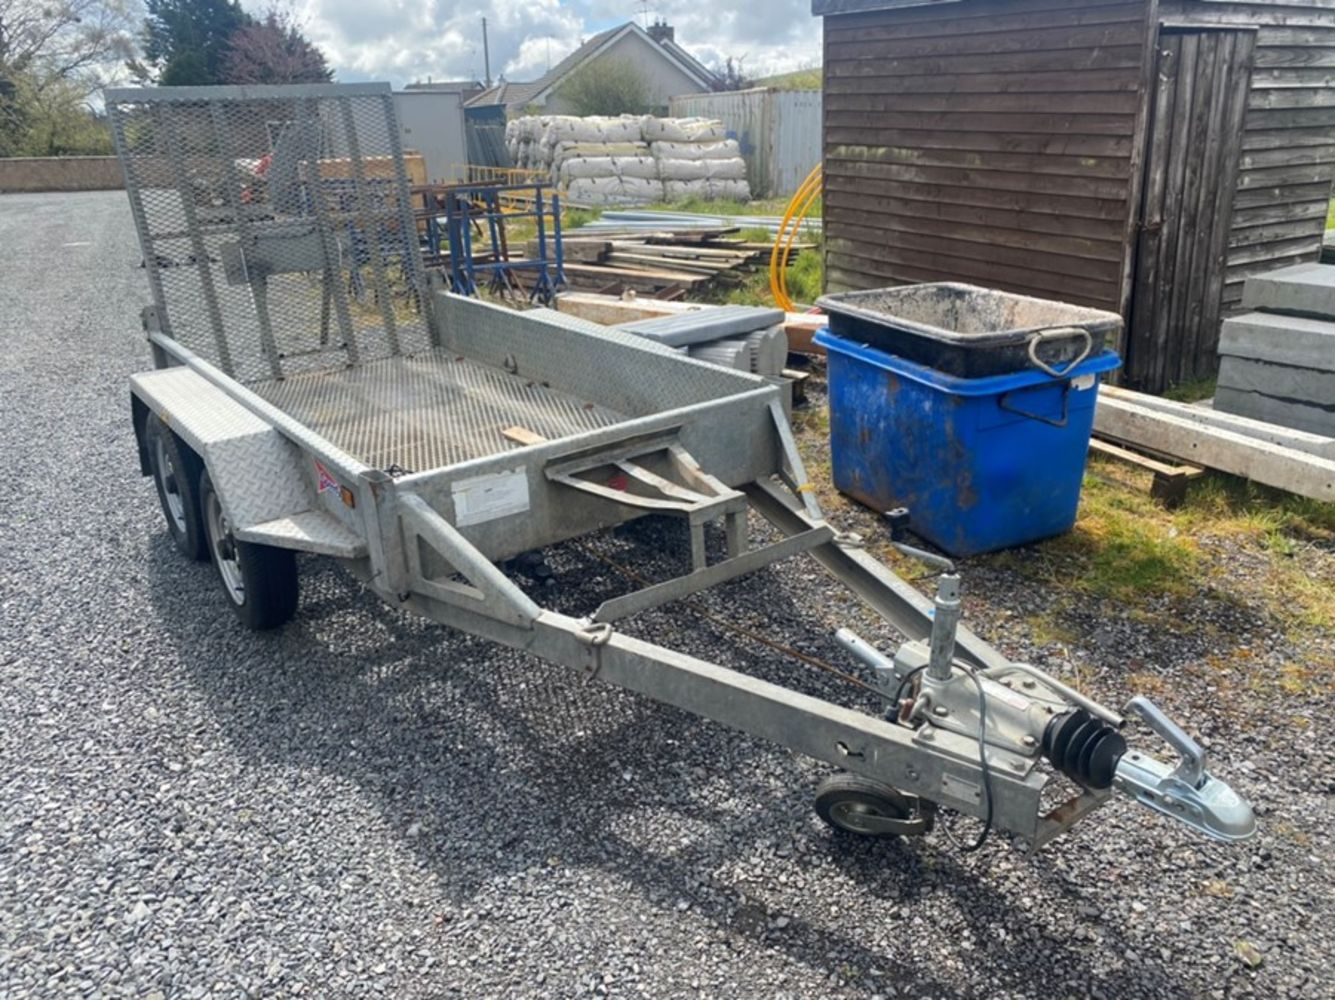 MASSIVE YARD AUCTION - TRAILERS,CONTAINERS,STEEL,YARD EQUIPMENT.  ENDING SATURDAY 8TH MAY FROM 12NOON